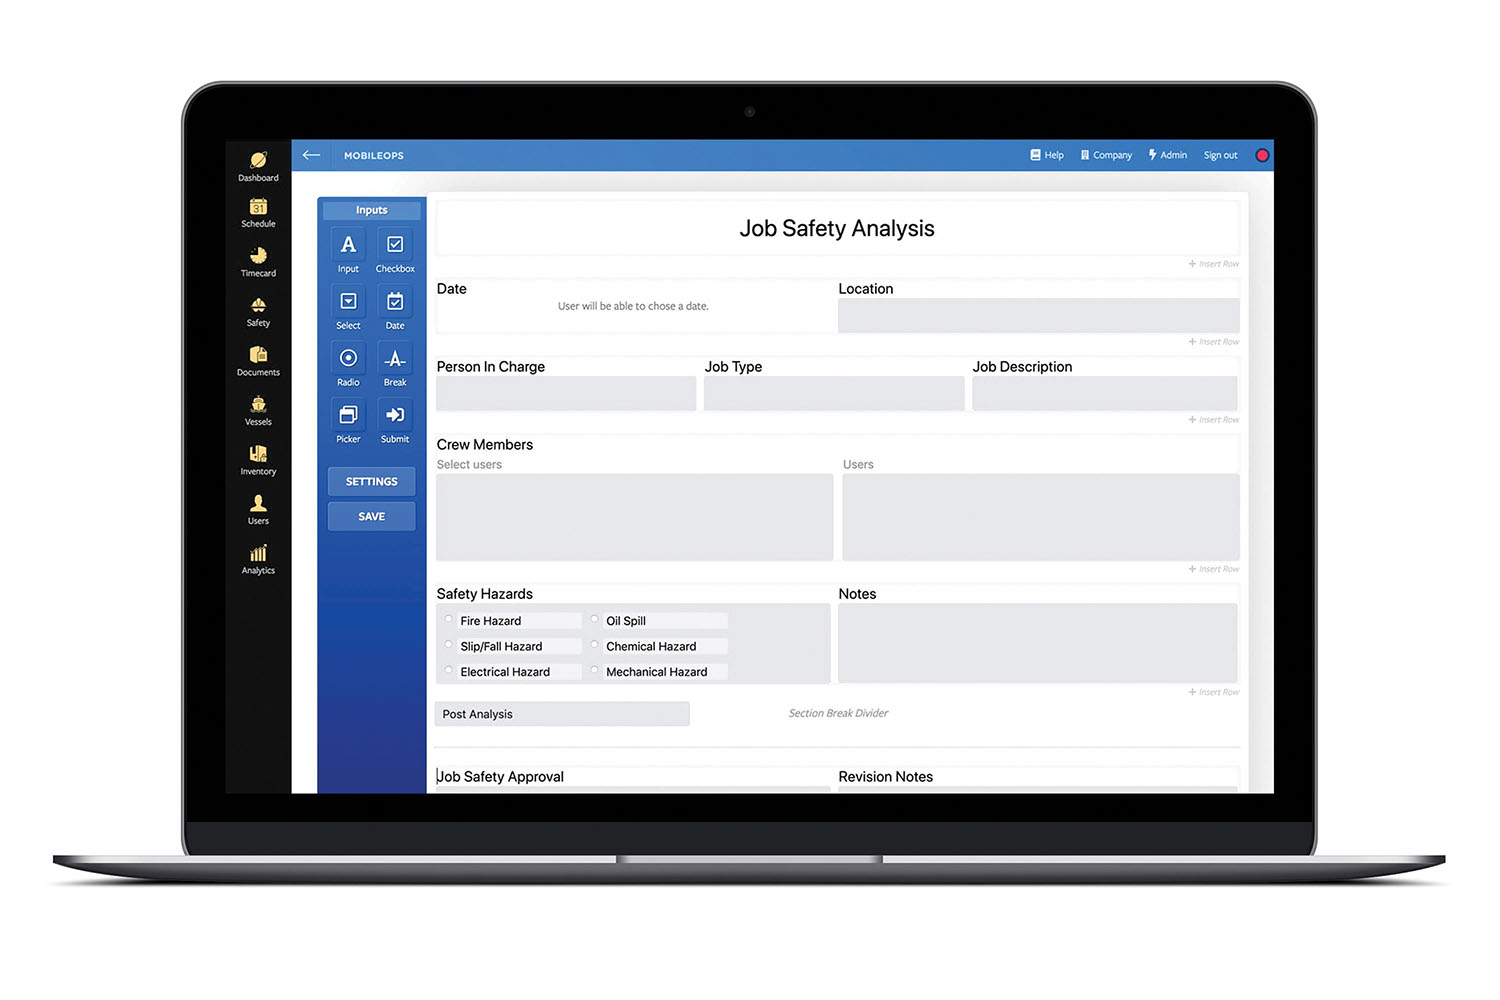 MobileOps Introduces Form Builder To Marine Industry